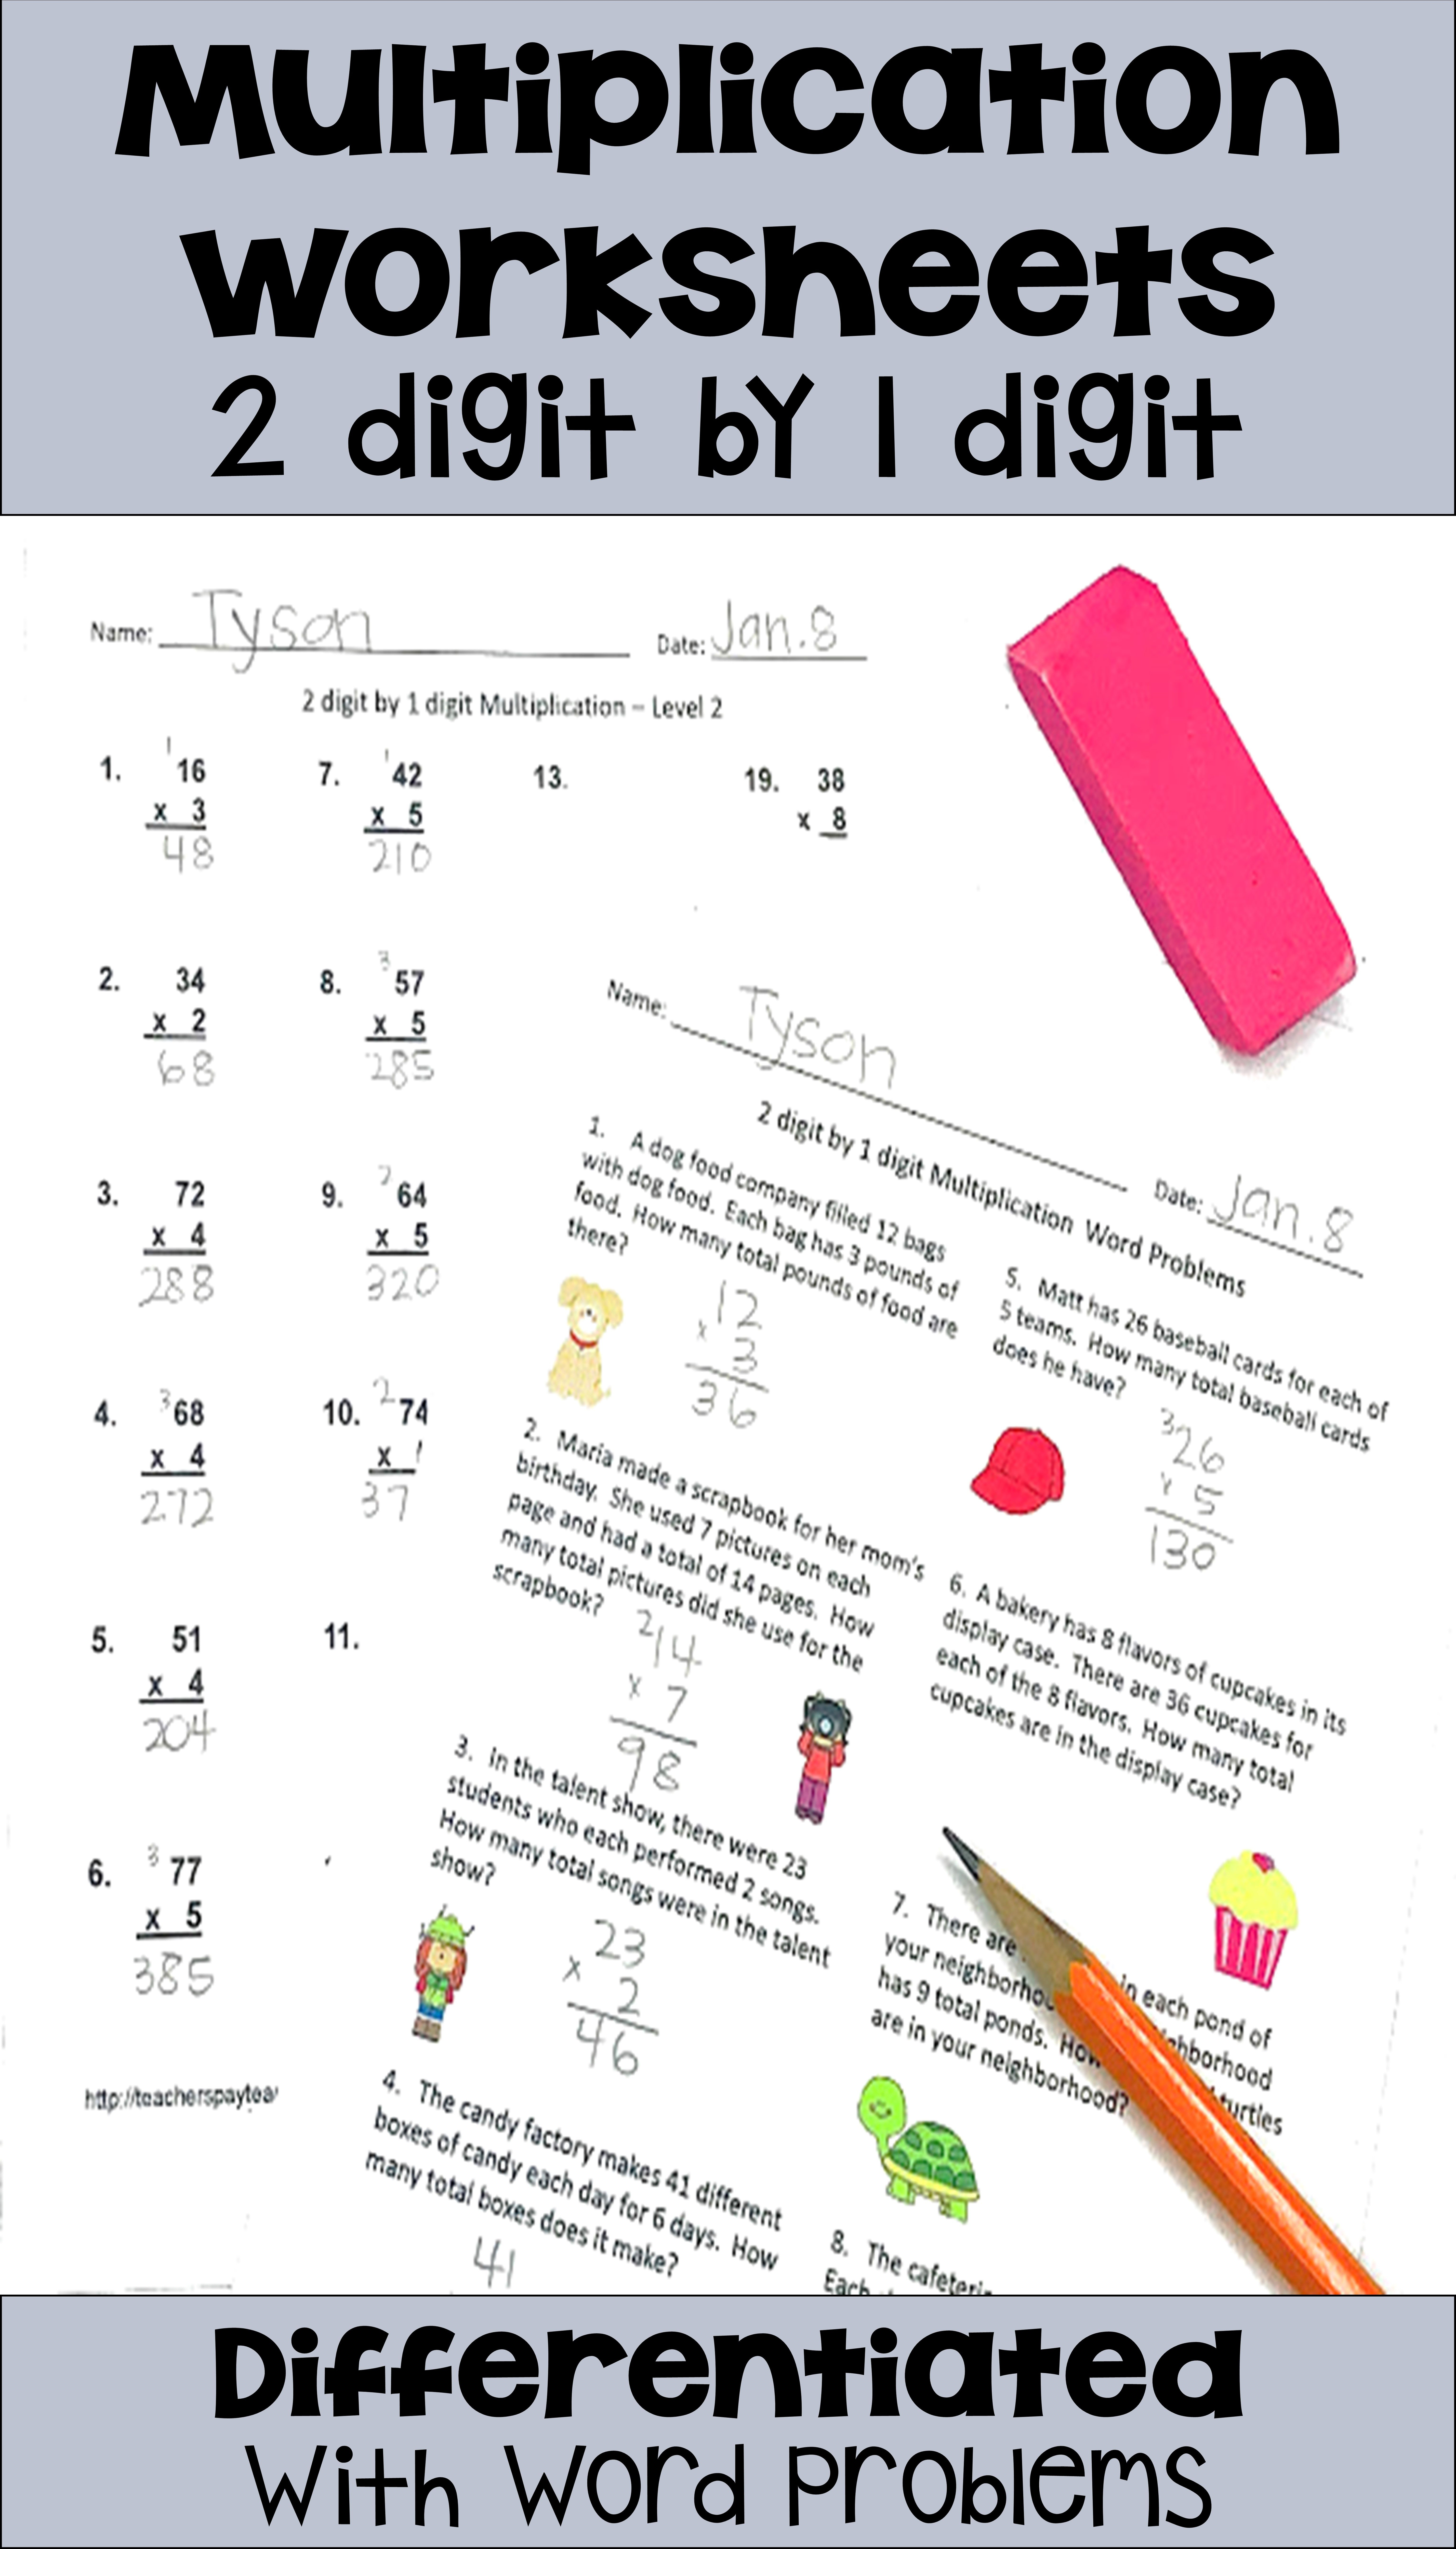 Multiplication Worksheets 2 Digit By 1 Digit 3 Levels